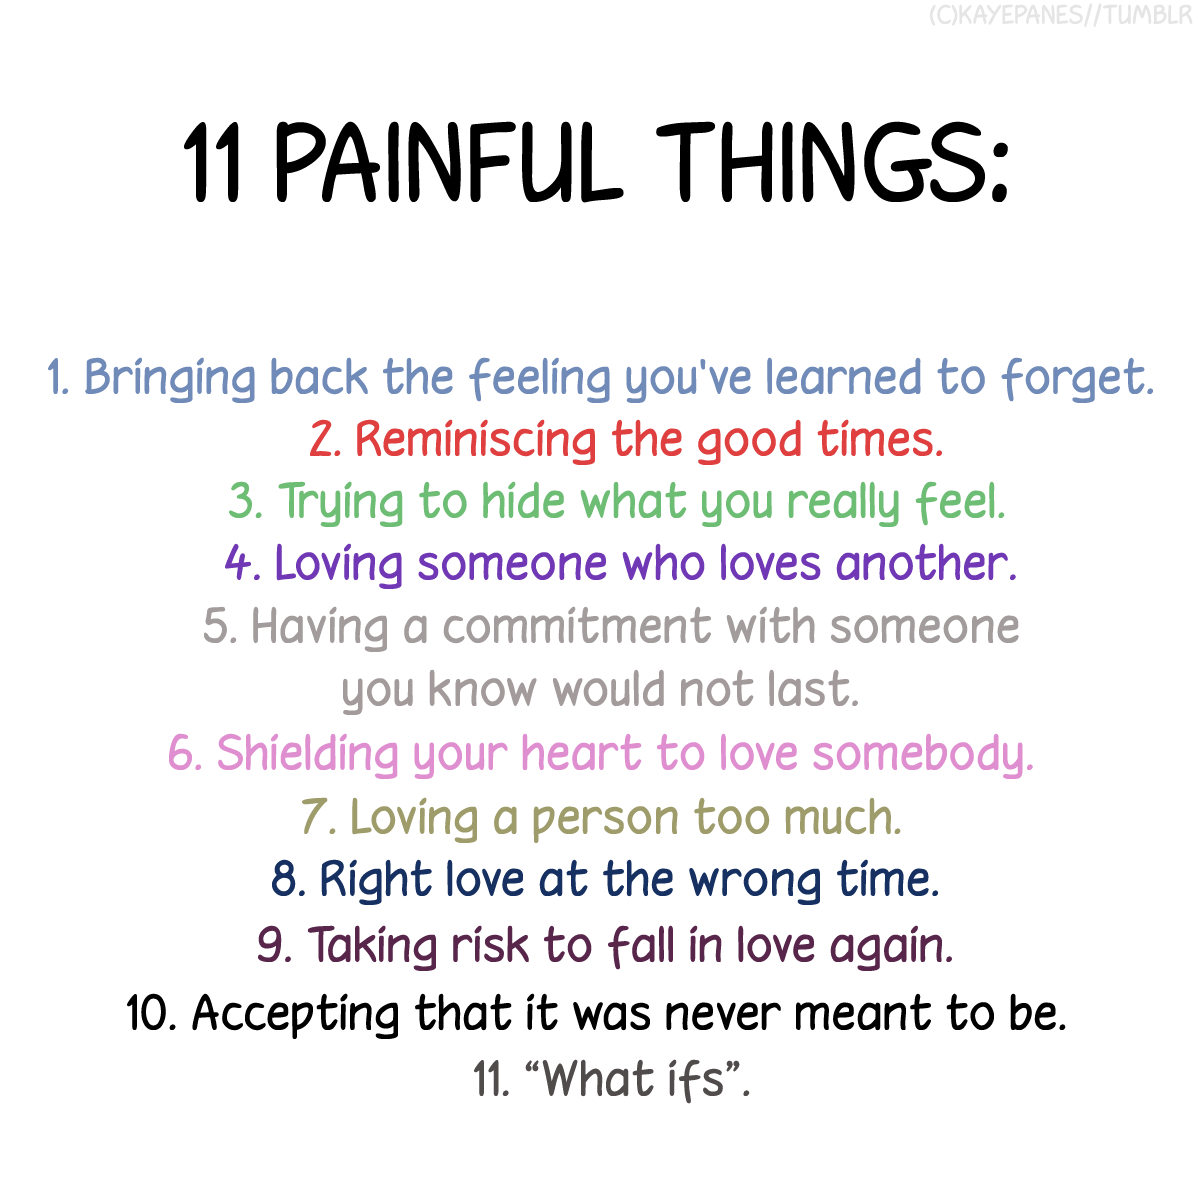 Cute Life Quotes Adorable Cute Life Quotes 11 Painful Things  Picsmine